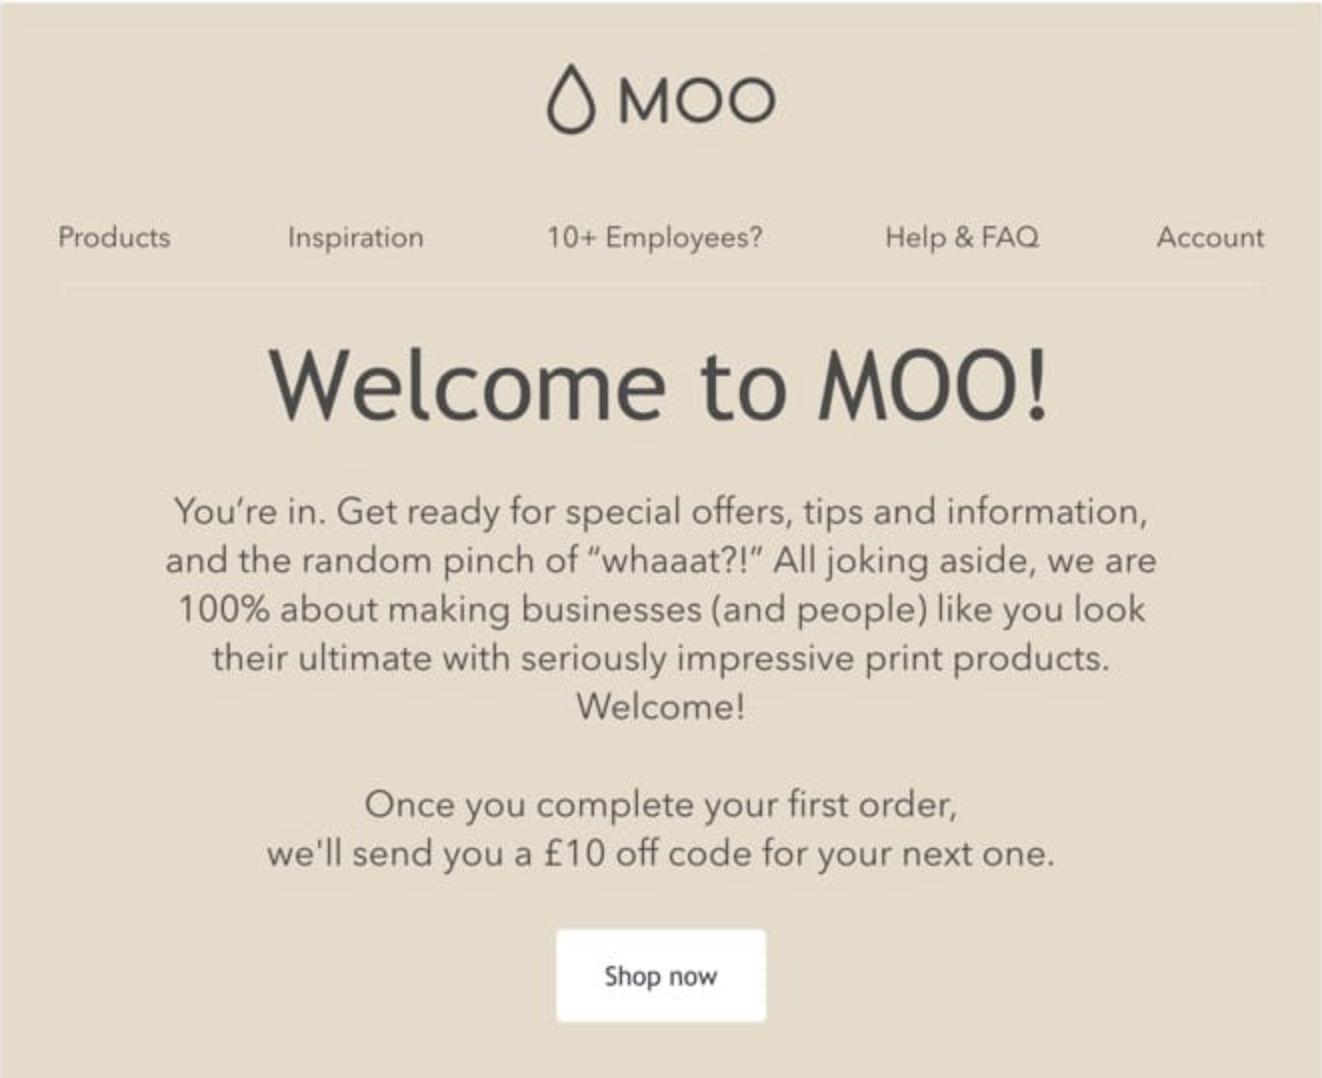 """Learn copywriting from this email marketing newsletter example from MOO. Showing the power of conversational copy. """"You're in. Get ready for special offers, tips and information, and the random pinch of """"whaaat?!"""""""